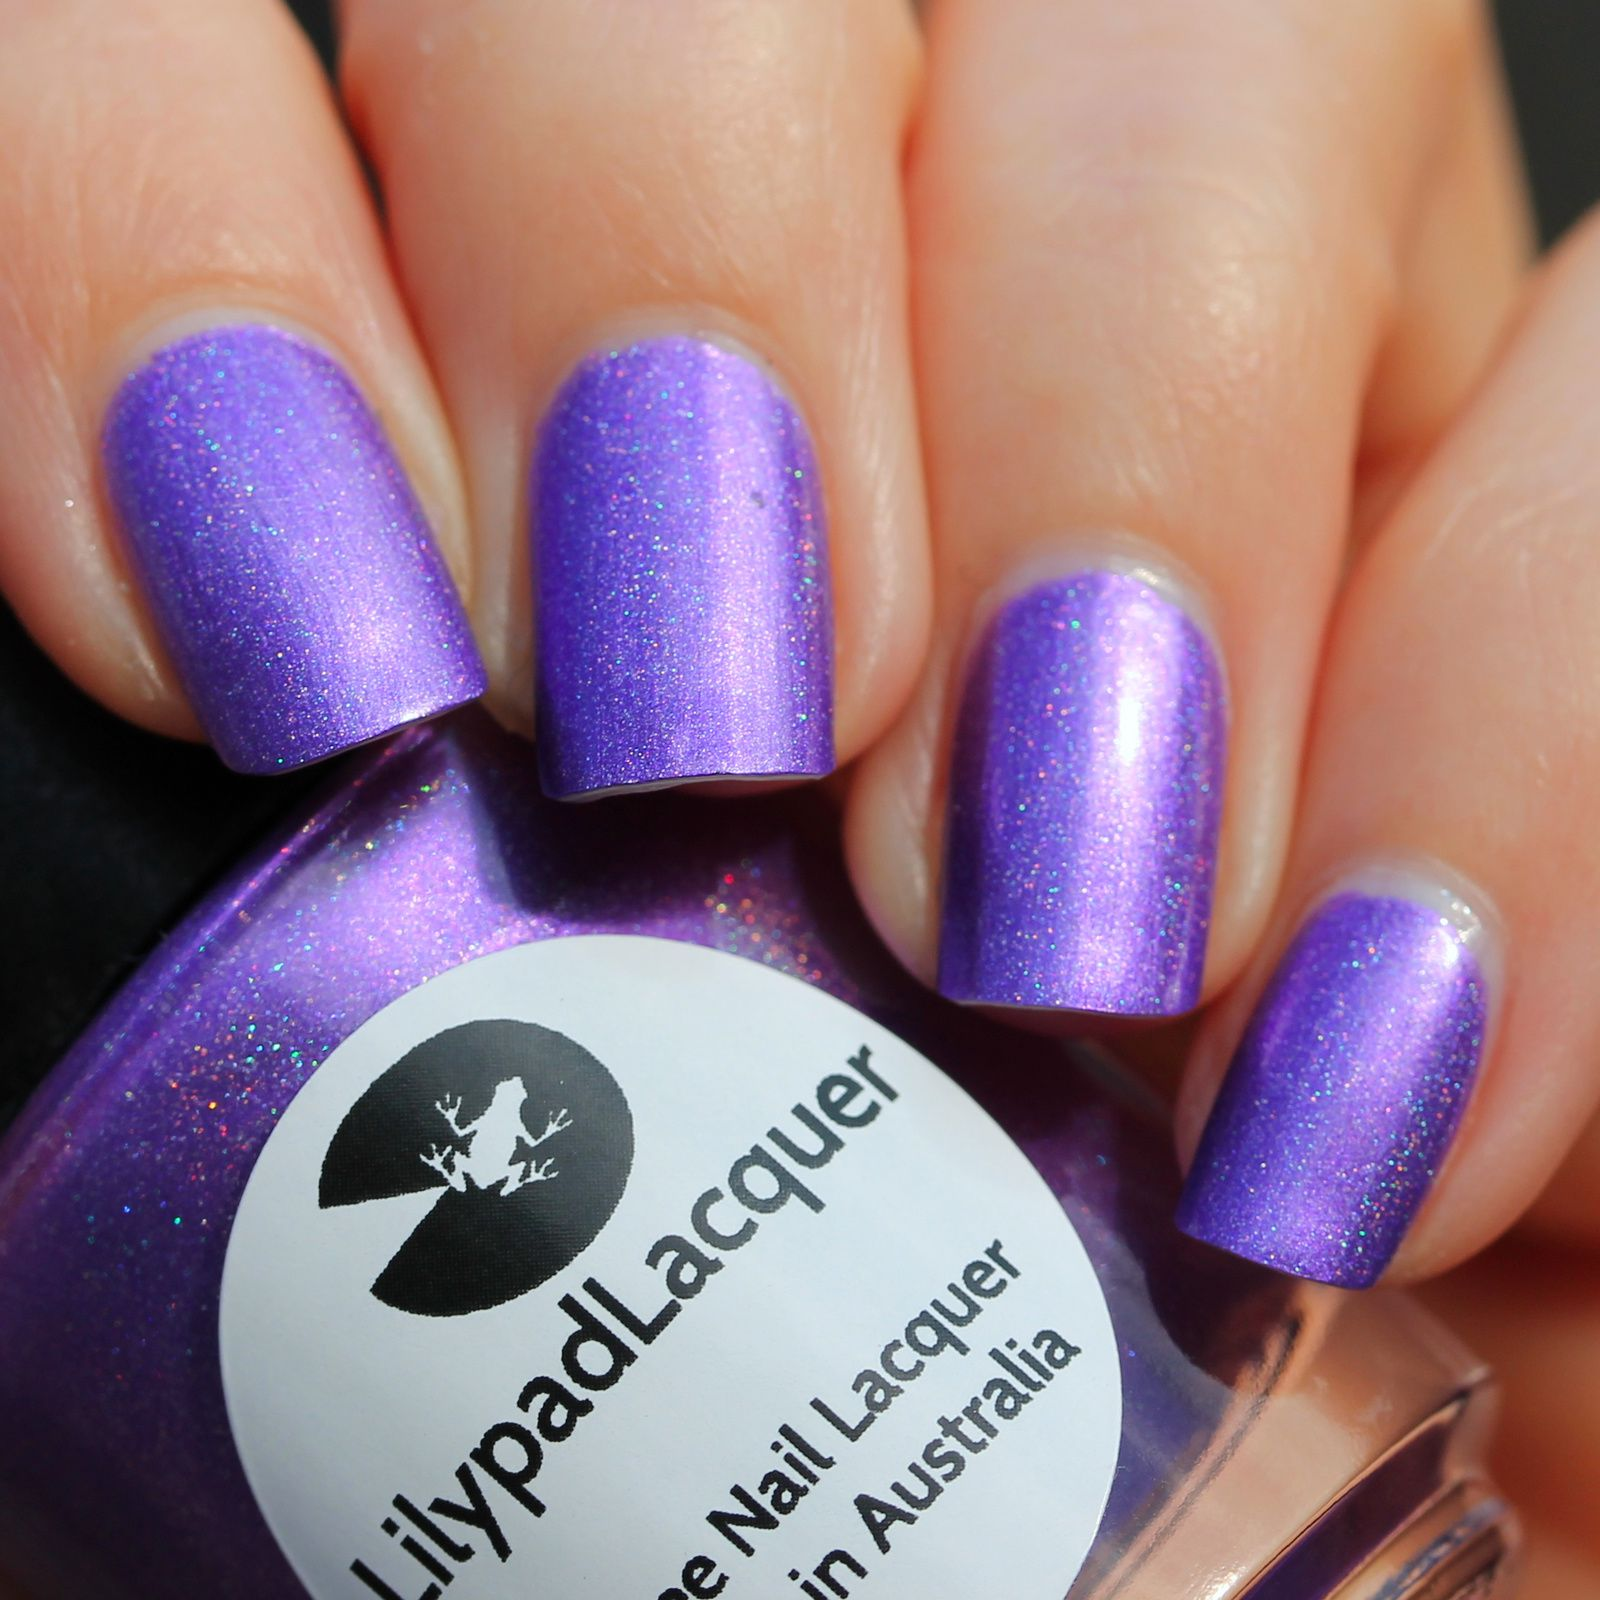 Duri Rejuvacote / Lilypad Lacquer Purple People Eater / Sally Hansen Miracle Gel Top Coat